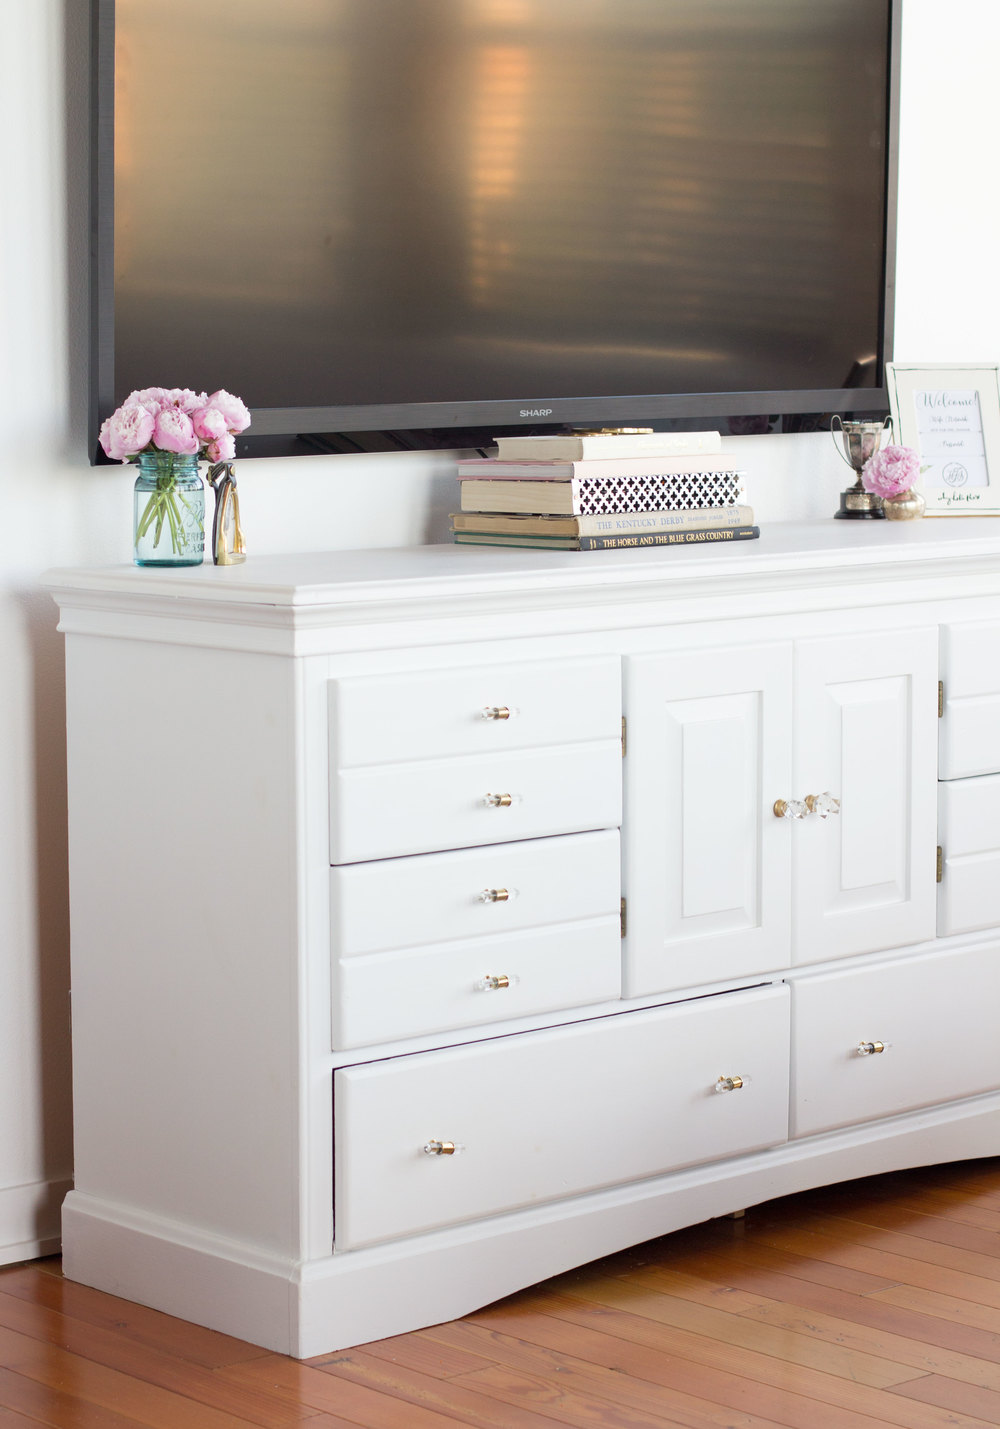 How to cover your tv cables even if your renting!  Cute DIY cable box cover, vintage books, pink peonies, and vintage knick knacks.